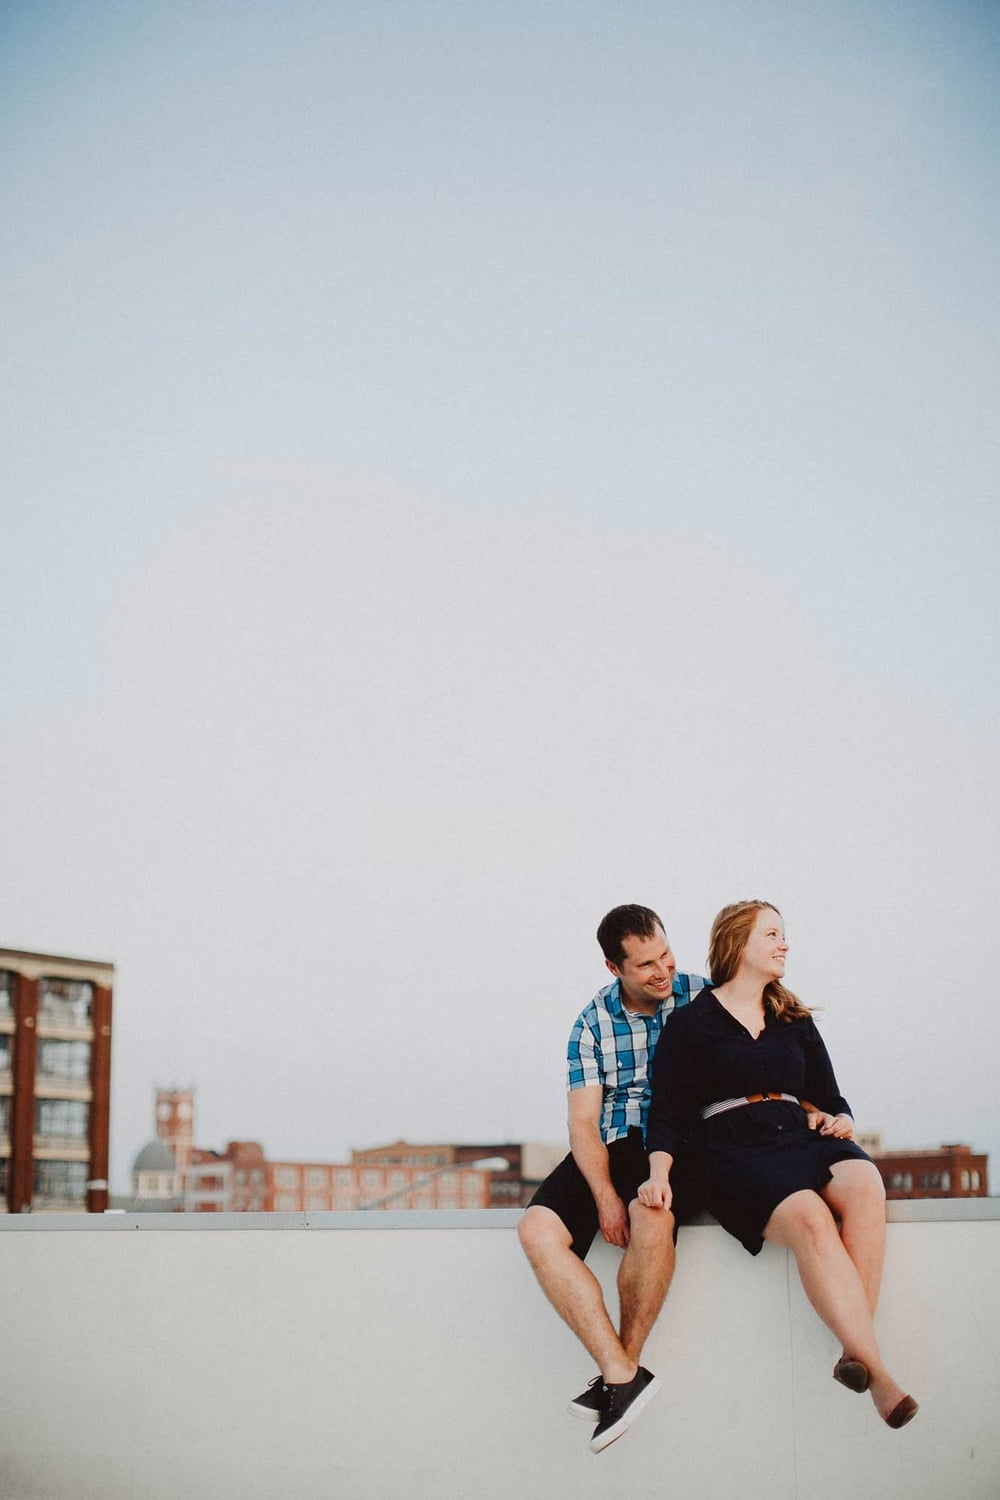 The-Brauns-2015-014-Stephanie-Lyle-Dayton-Engagement.jpg